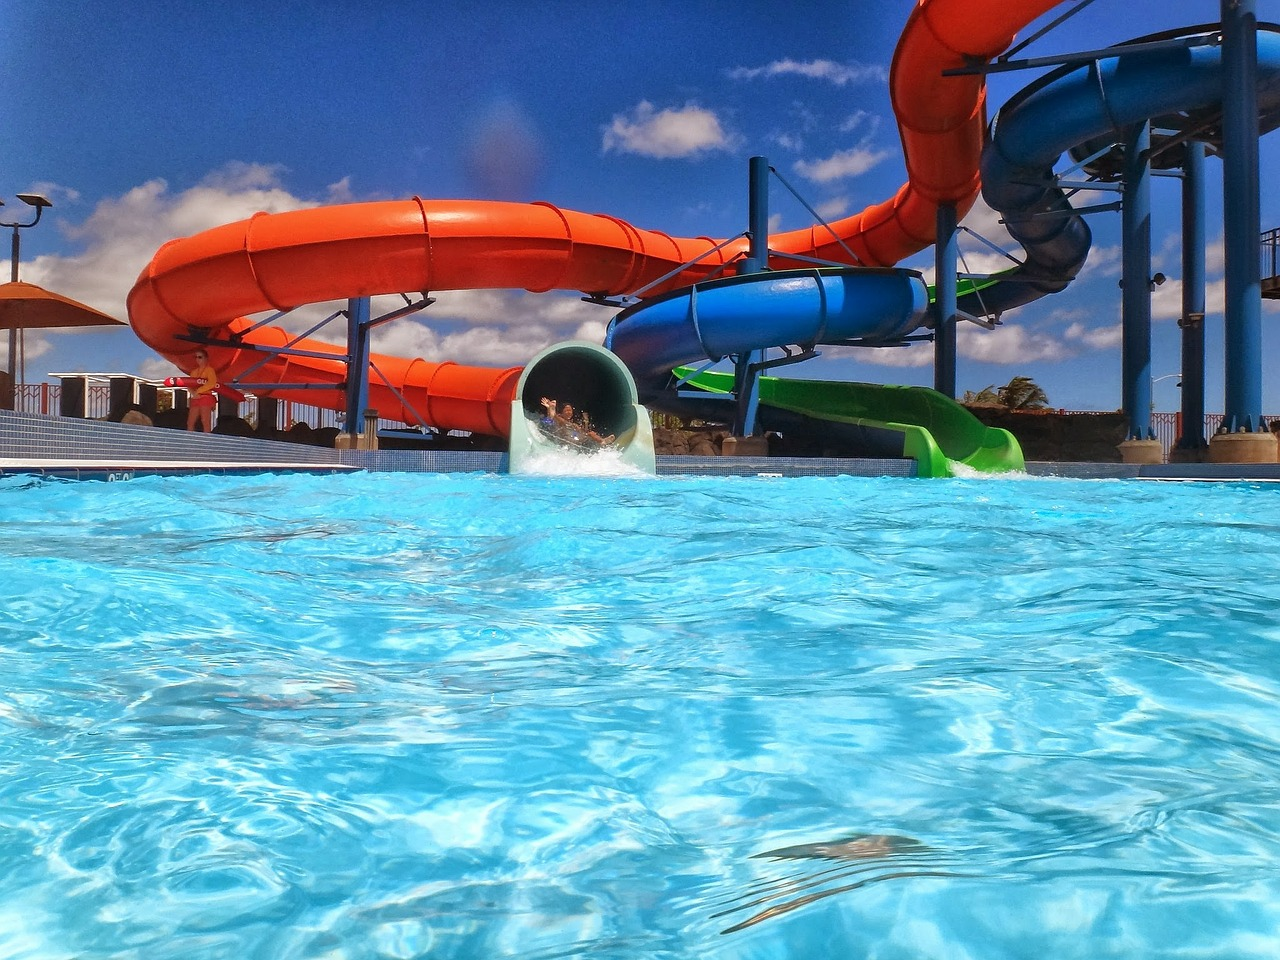 things to do with kids in erie: splash lagoon water park